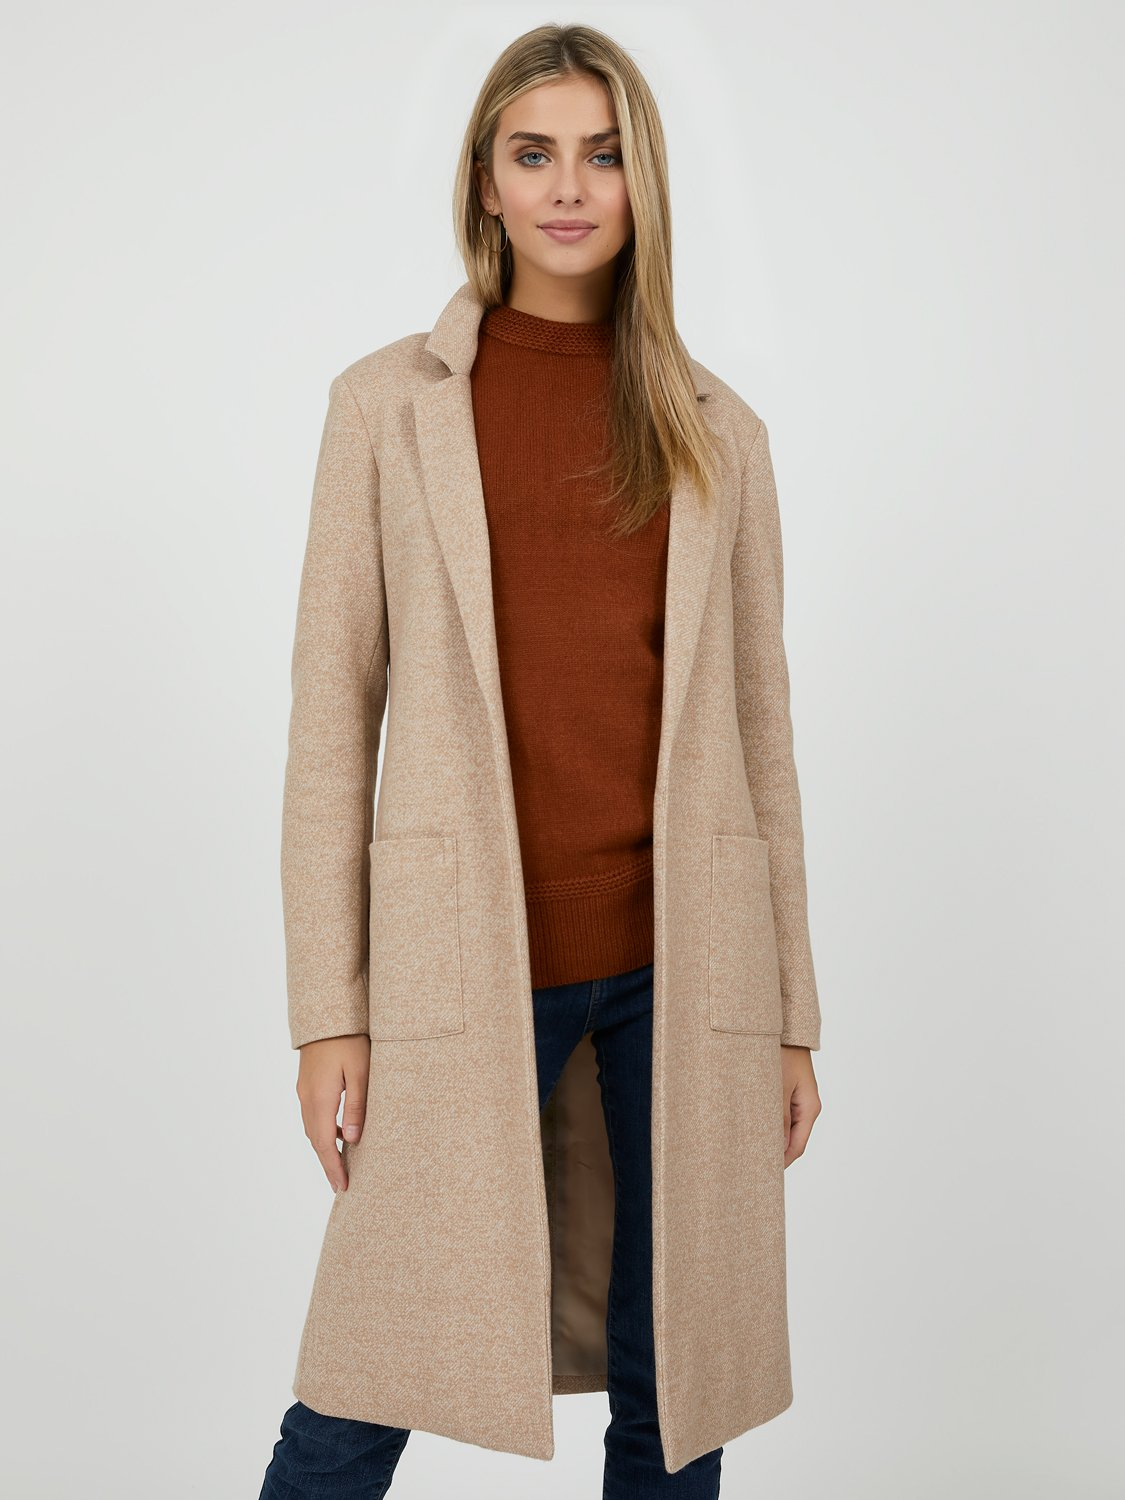 Menswear-Inspired Notch Collar Coat